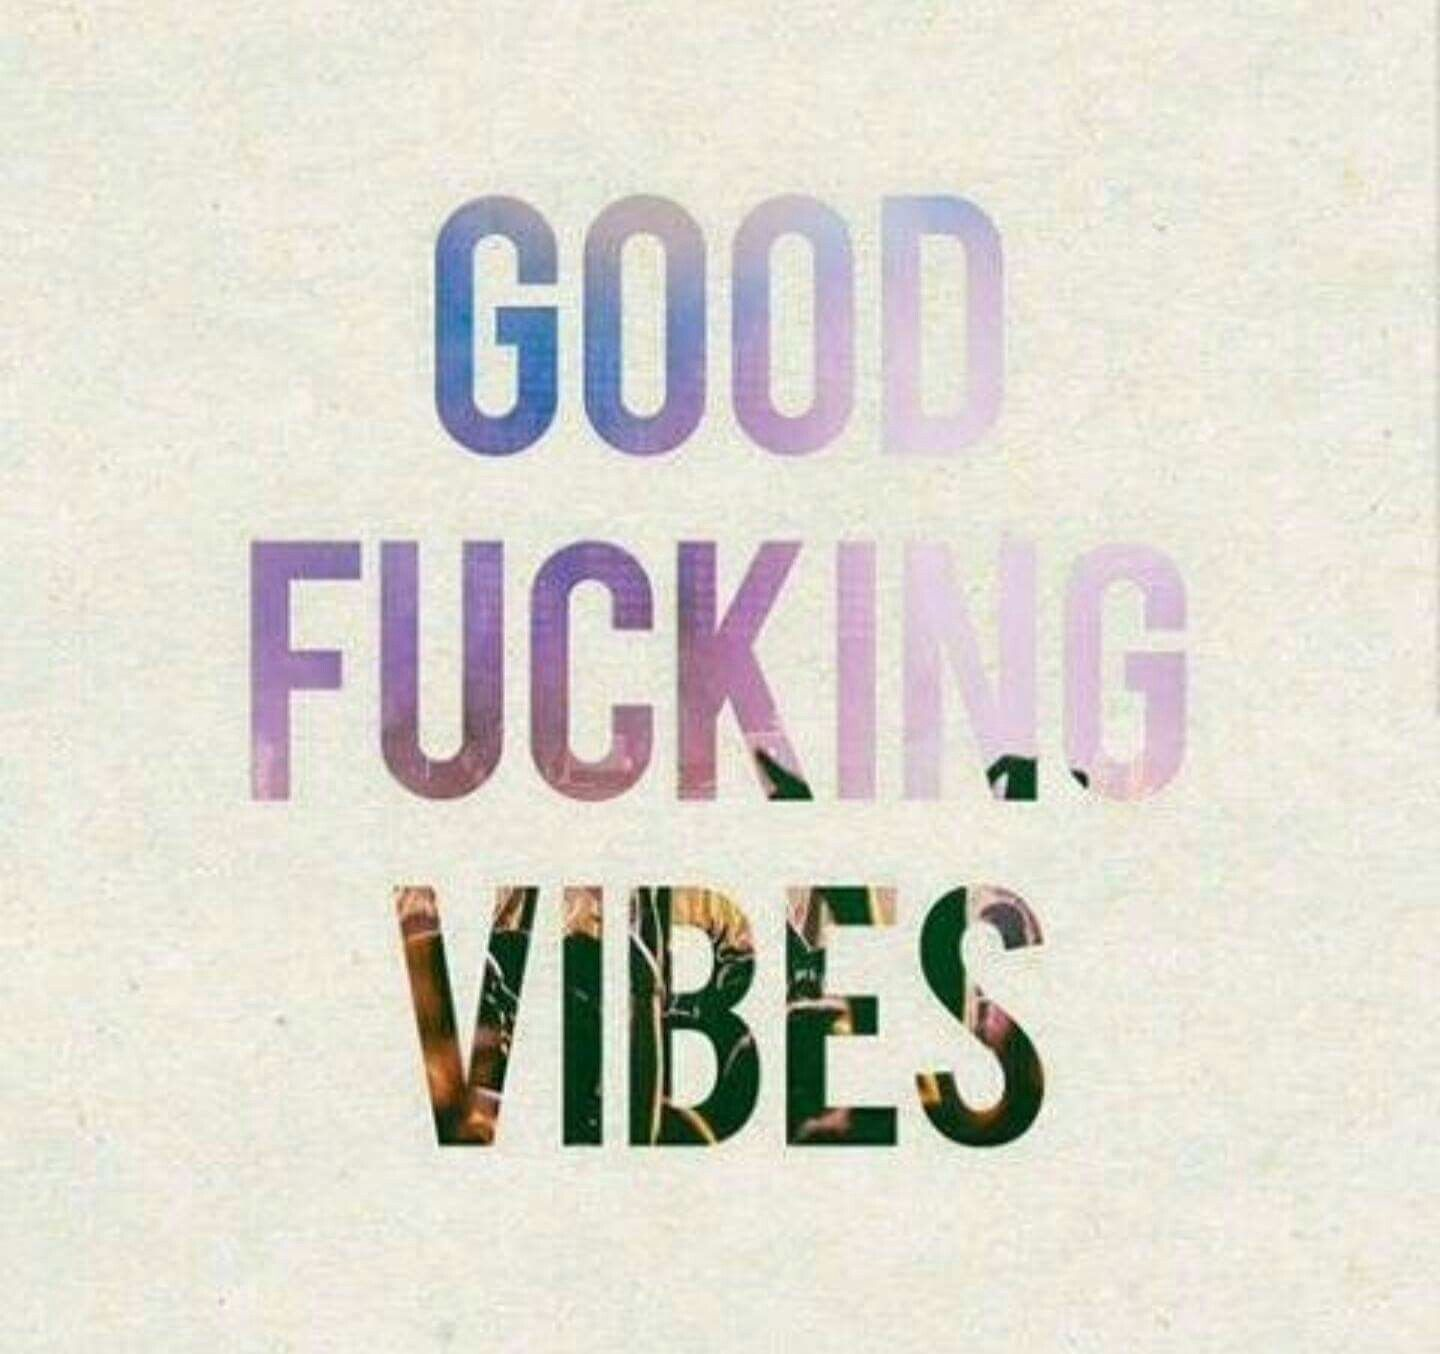 Good vibes every day!! <3